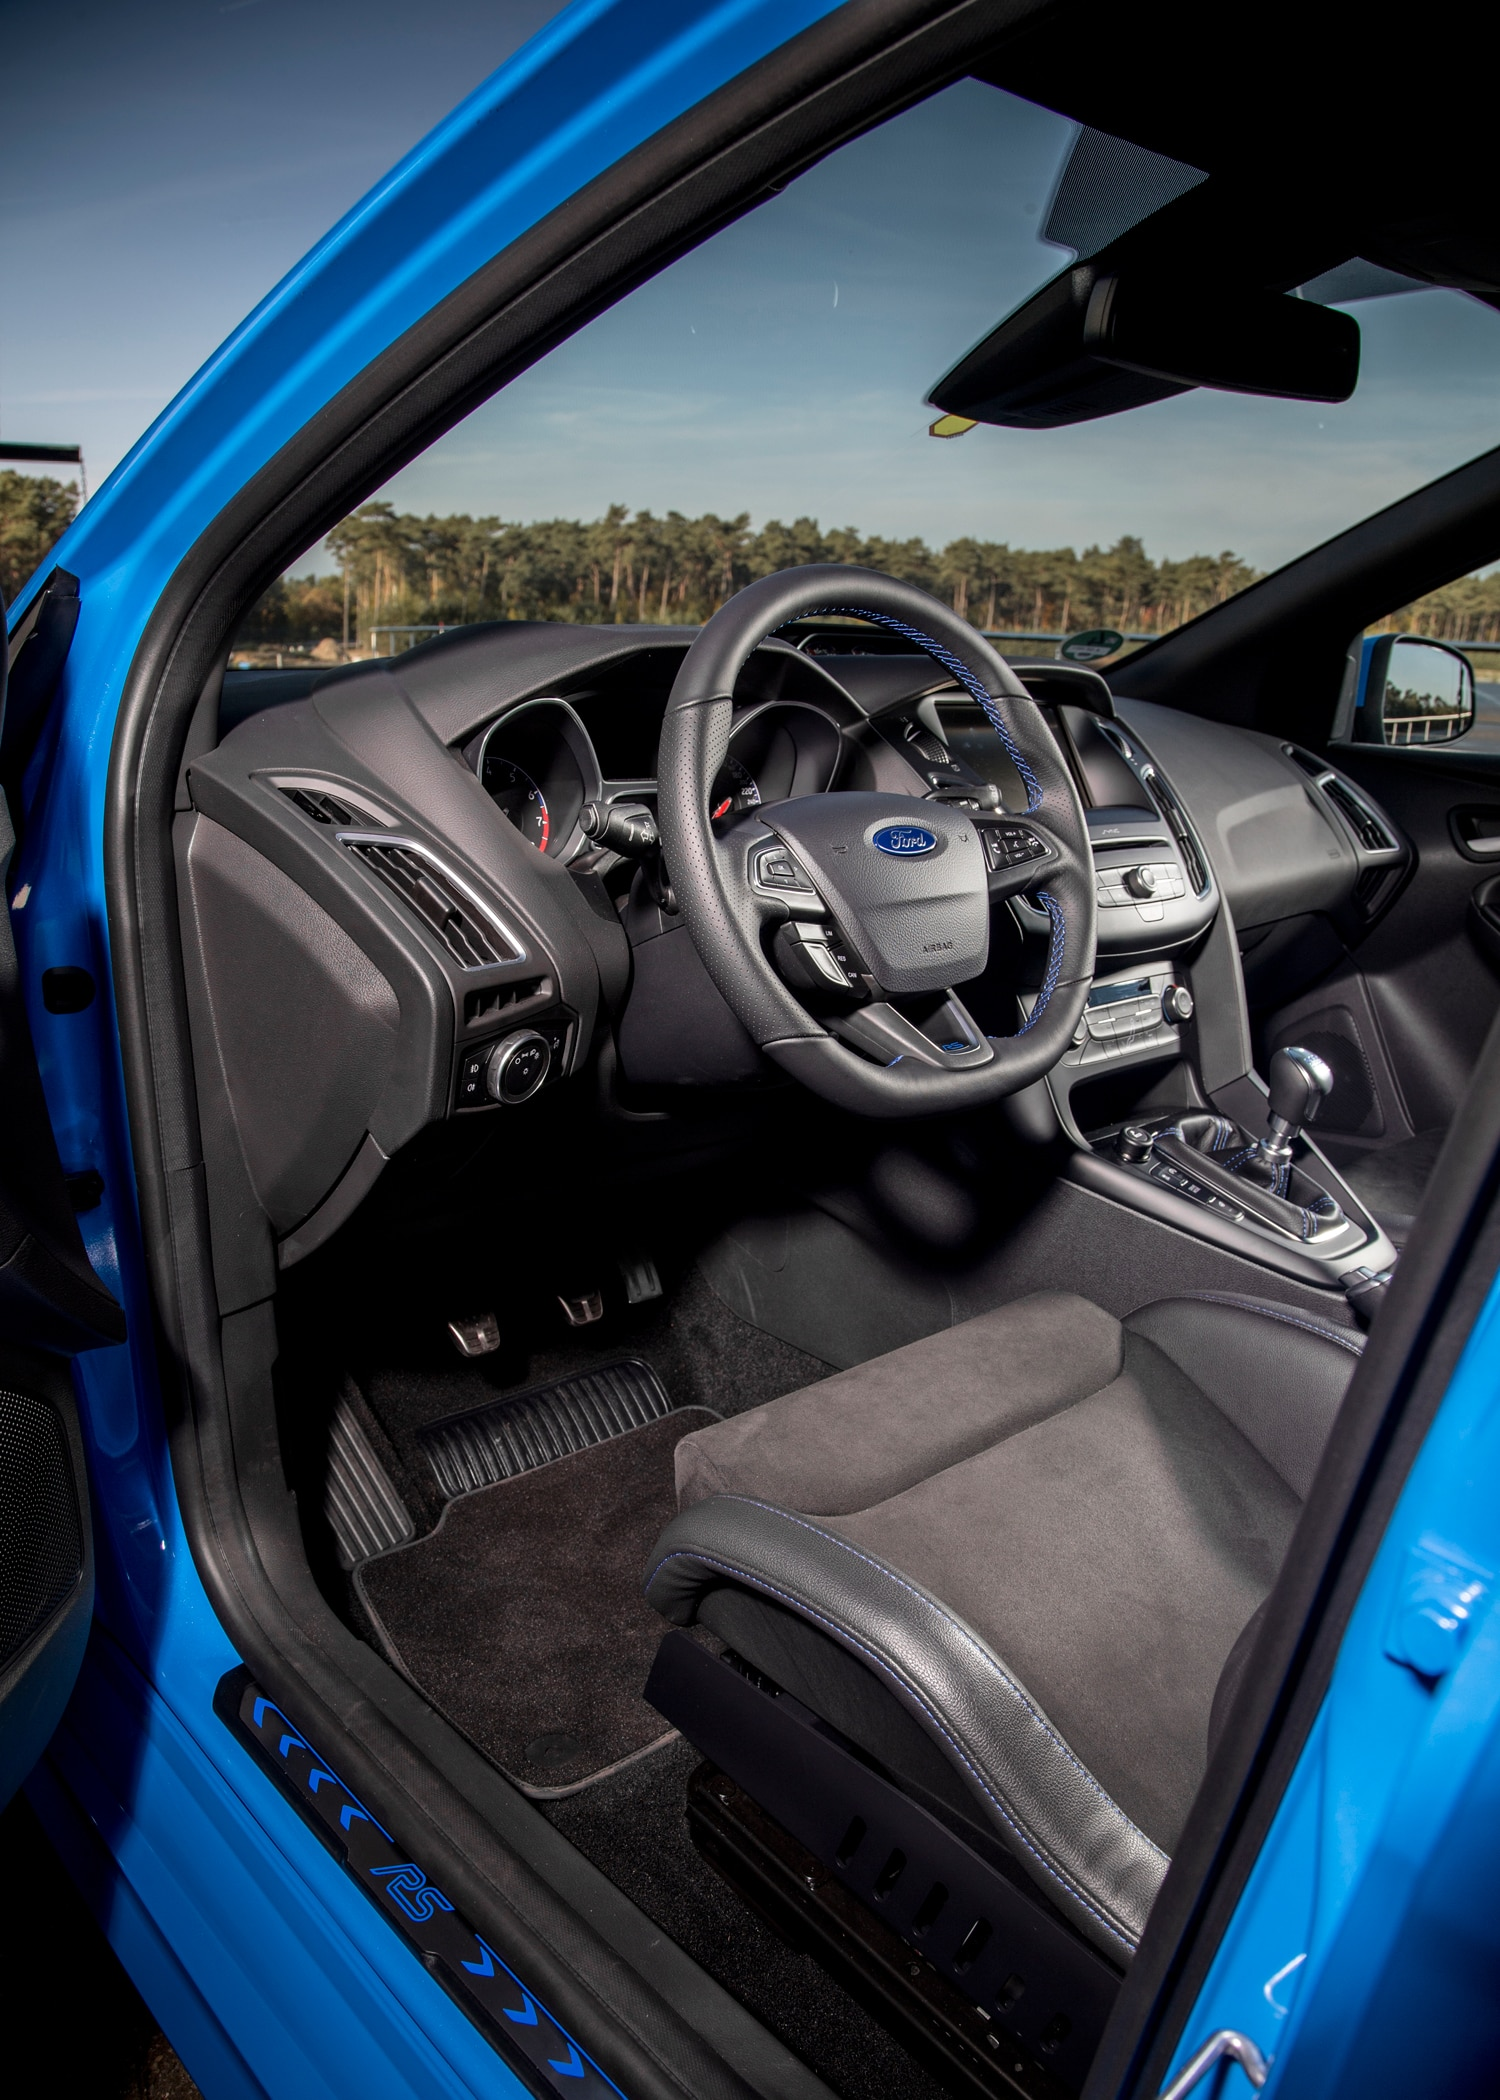 mountune readying upgrade packages for ford focus rs. Black Bedroom Furniture Sets. Home Design Ideas